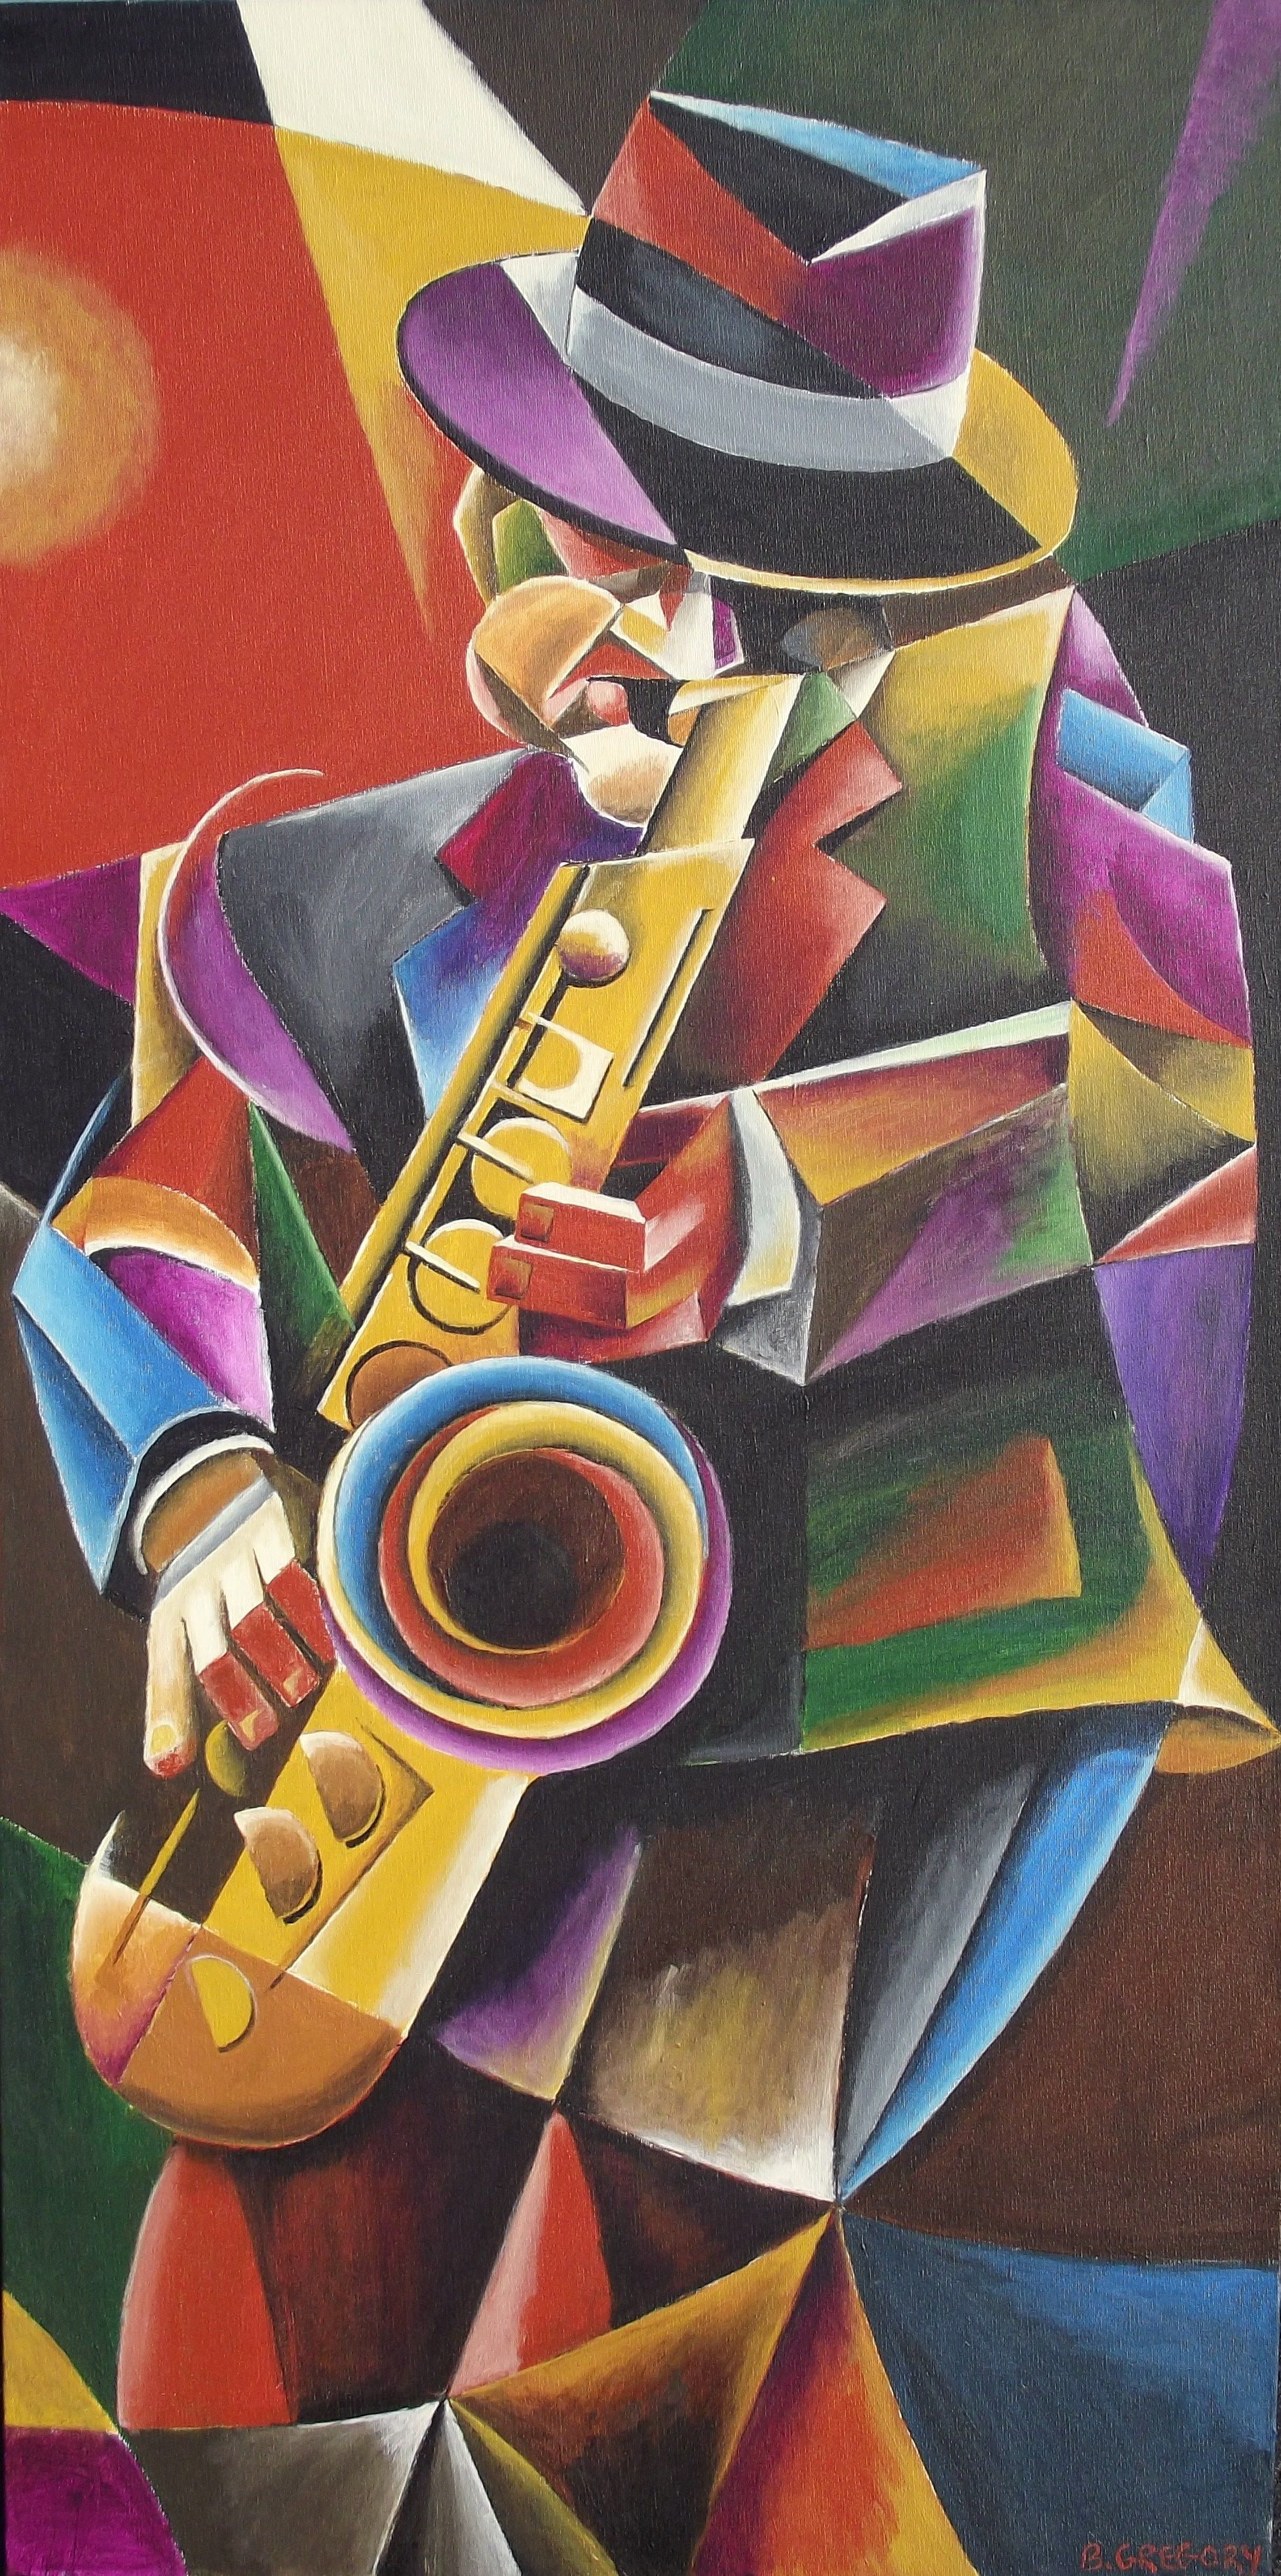 Jazz Sax Cubist Painting By Bob Gregory Www Artfxdesignstudios Com Cubist Art Jazz Sax Music Bob Gregory Saxophone Art Musical Art Jazz Art